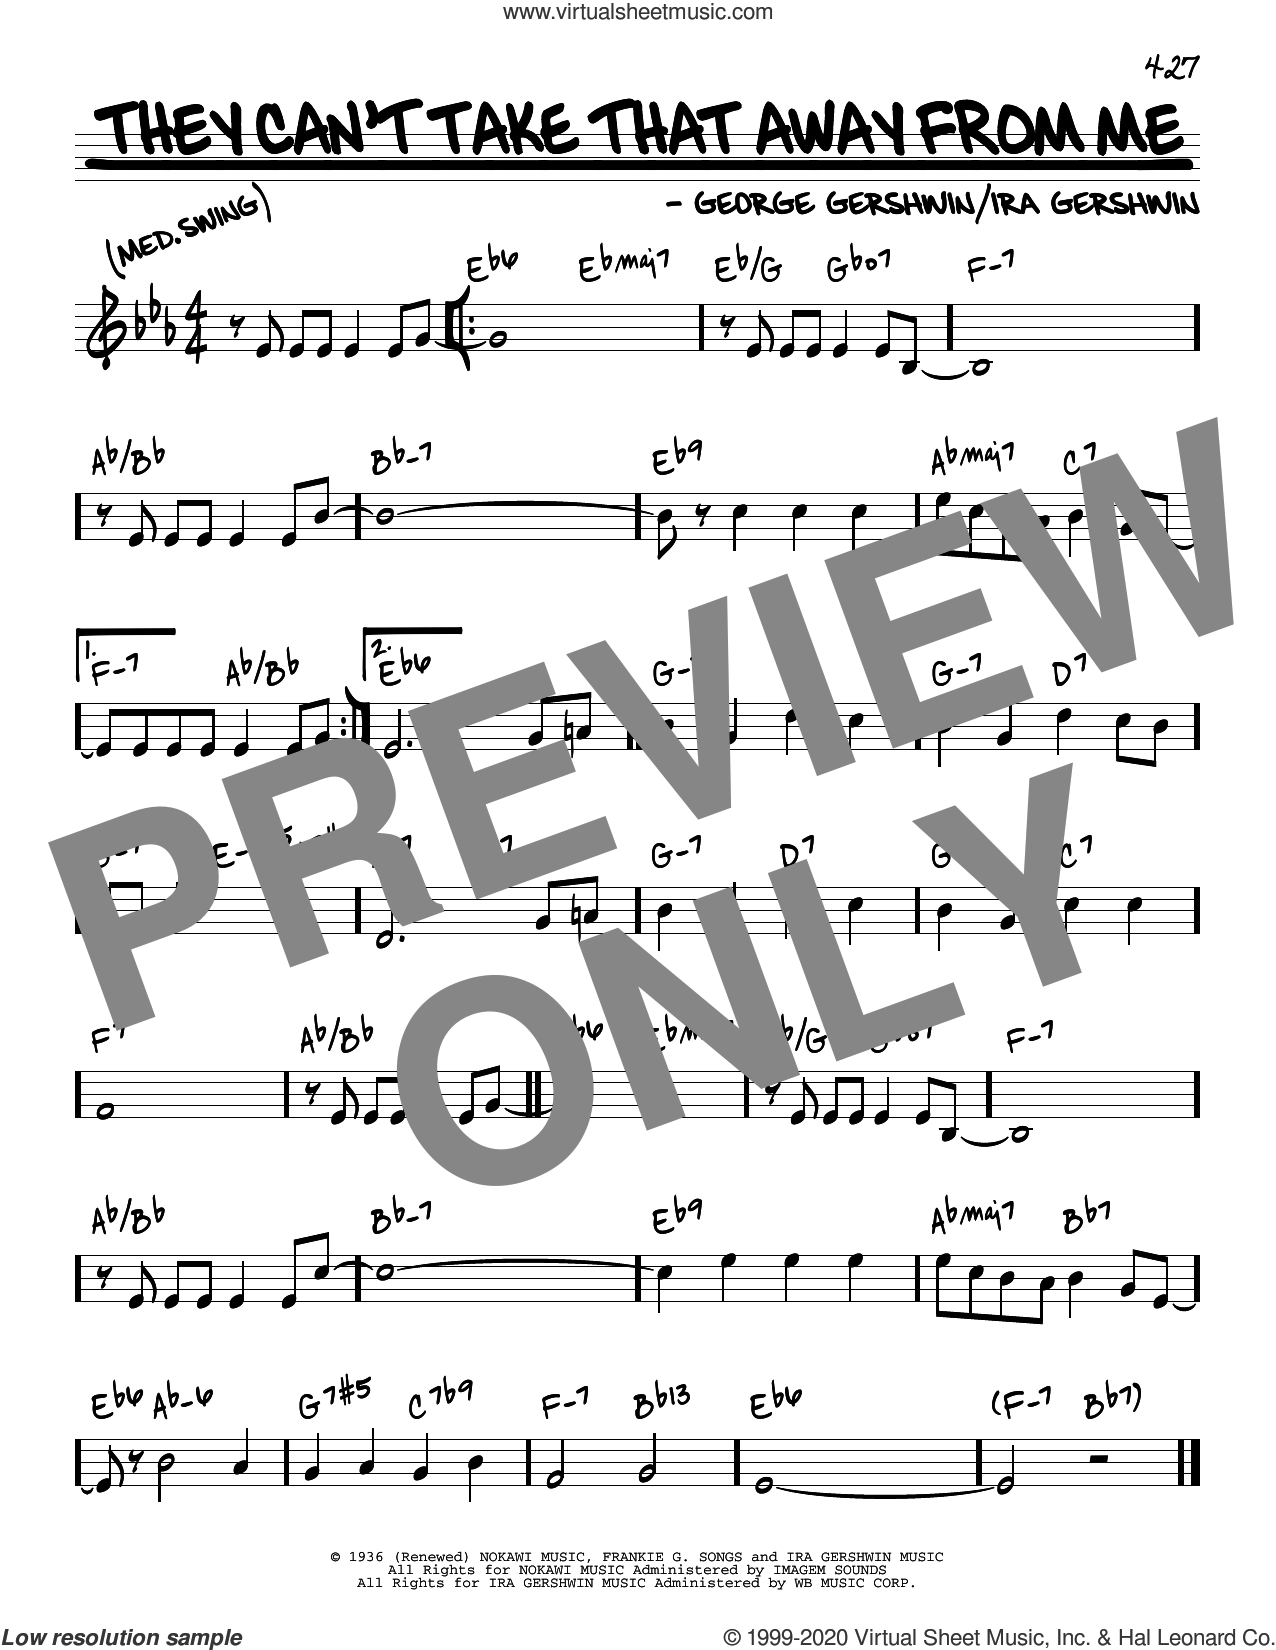 They Can't Take That Away From Me sheet music for voice and other instruments (real book) by George Gershwin, Frank Sinatra, George Gershwin & Ira Gershwin and Ira Gershwin, intermediate skill level